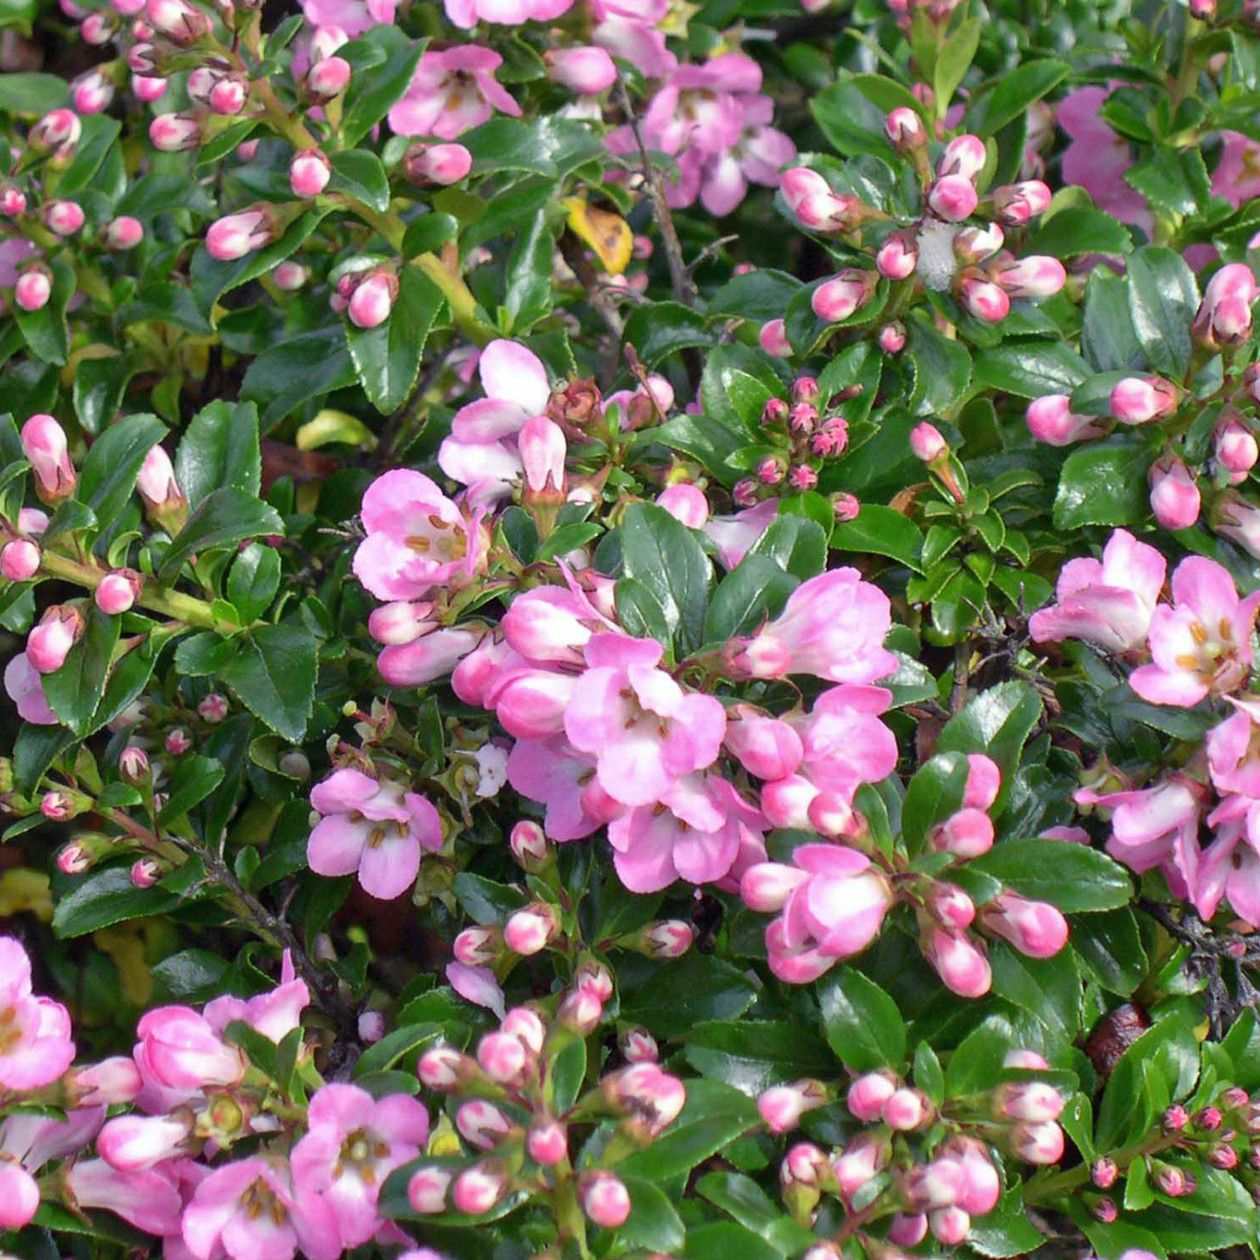 Escallonia apple blossom bushes and shrubs pinterest escallonia apple blossom this is smaller than other varieties of escallonia and has masses of apple blossom pink flowers in summer dhlflorist Gallery